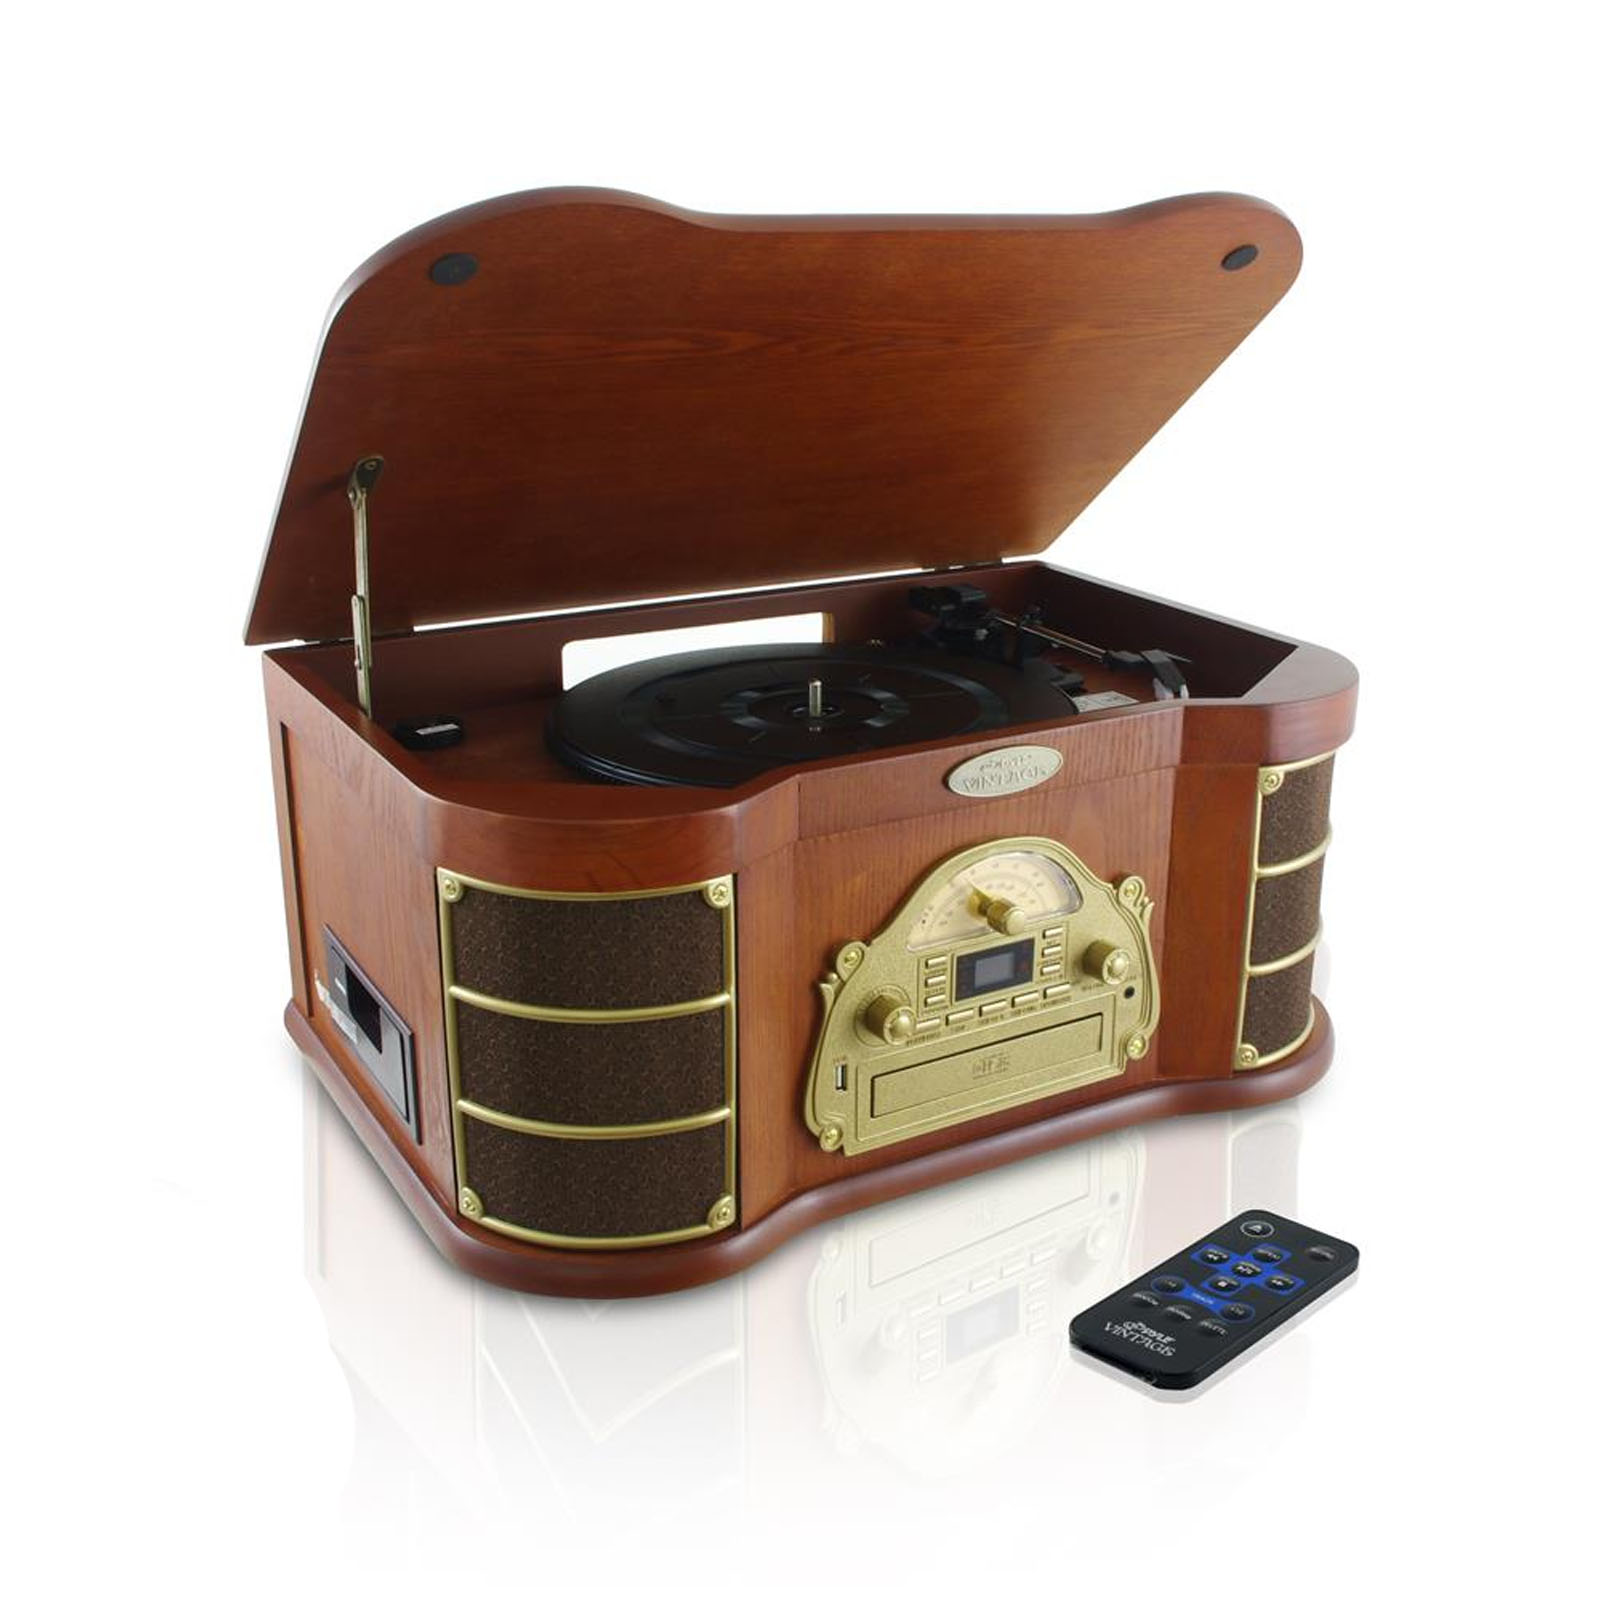 Pyle BT Vintage Style Turntable with AM/FM Radio, CD & Cassette Players, USB Flash Recording & Slide-Out /MP3 Dock